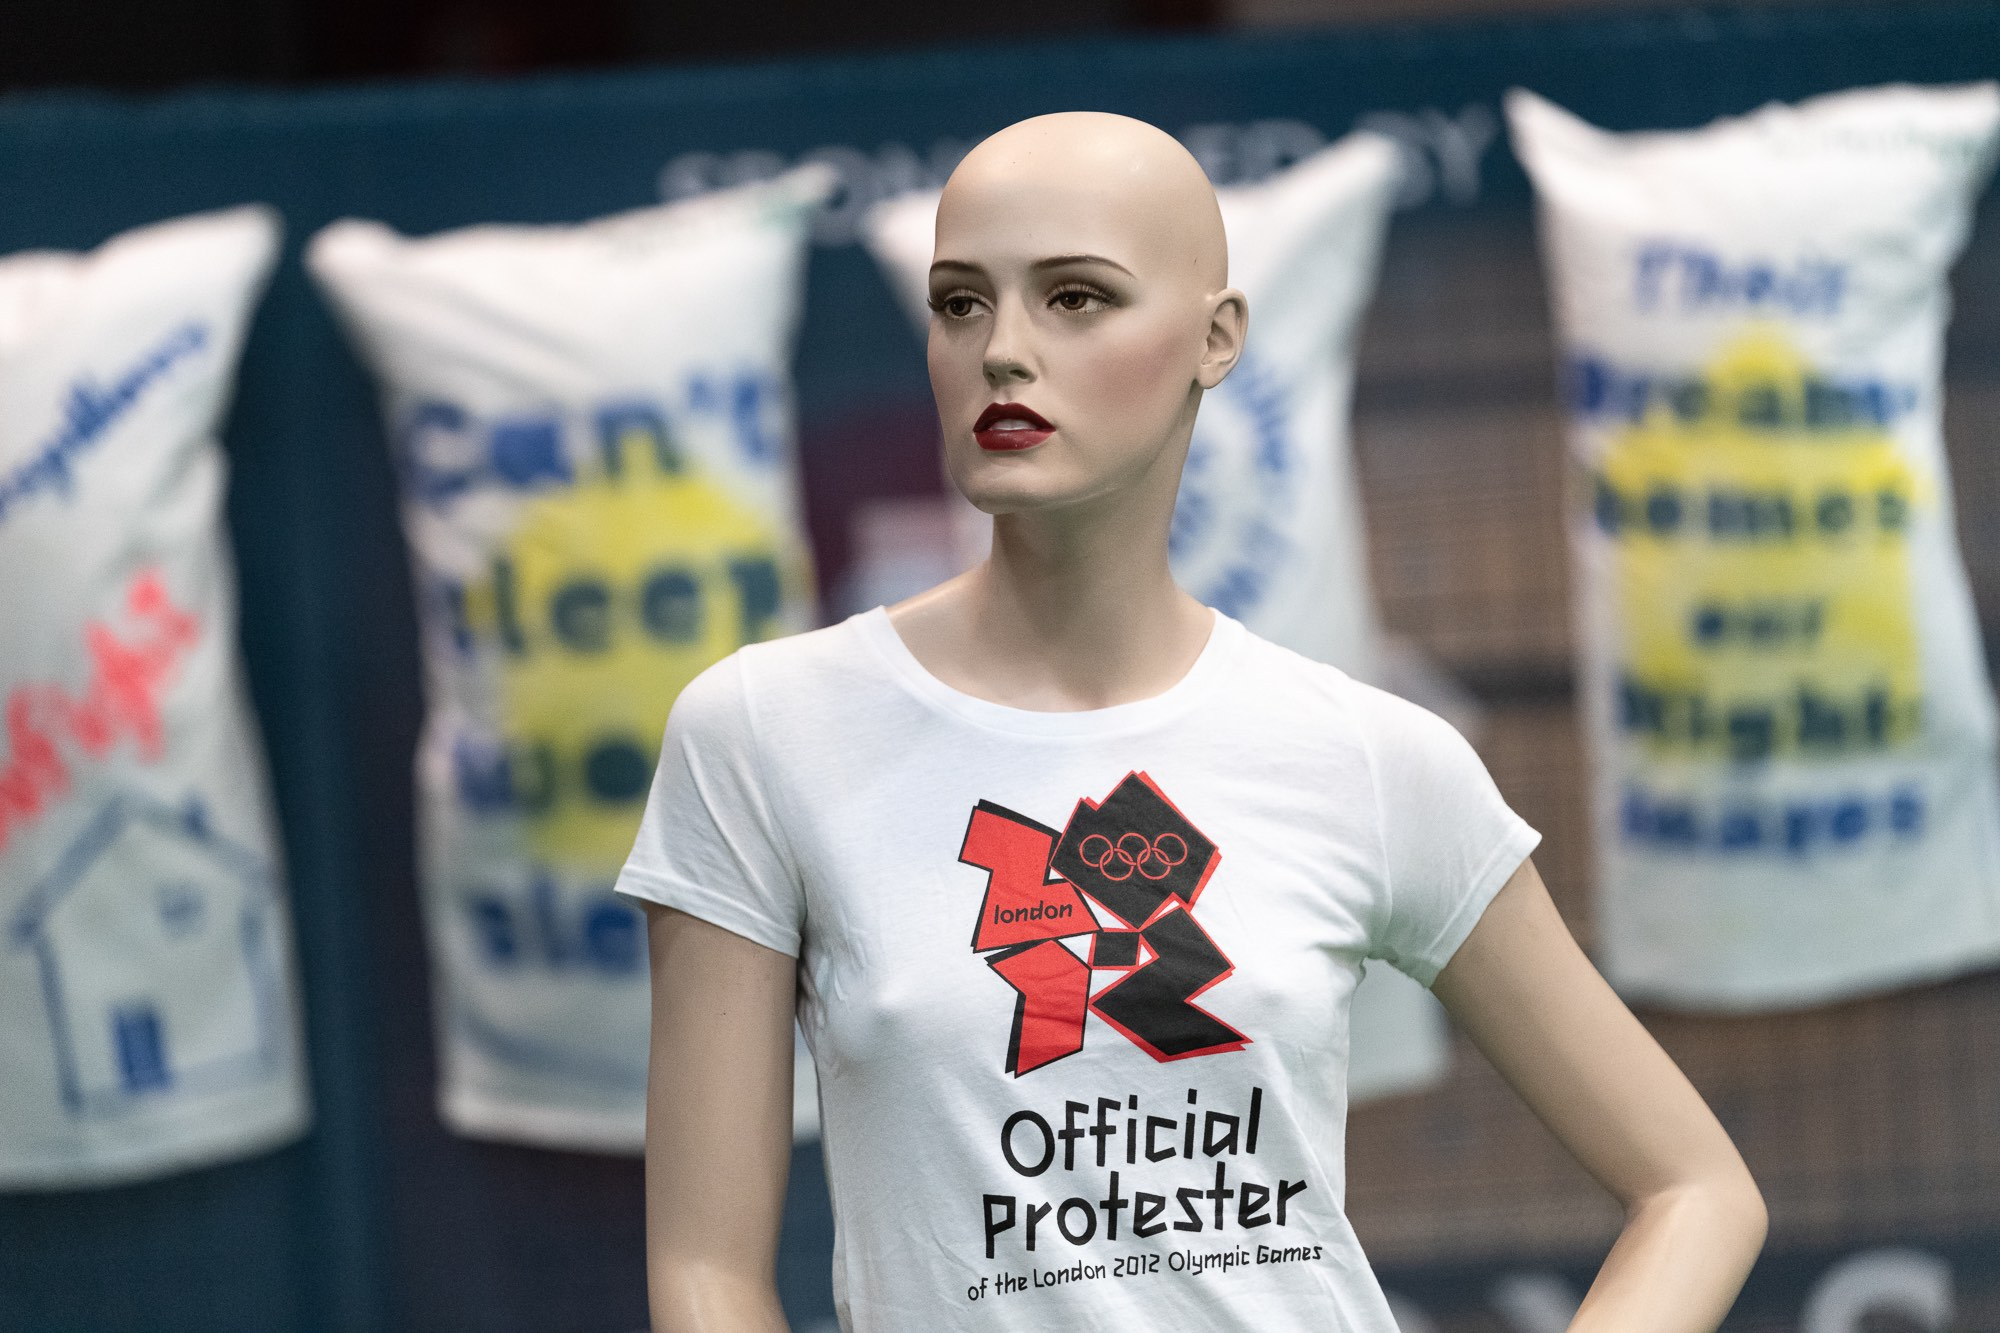 Official Olympics Protester, by Ross Fassbender